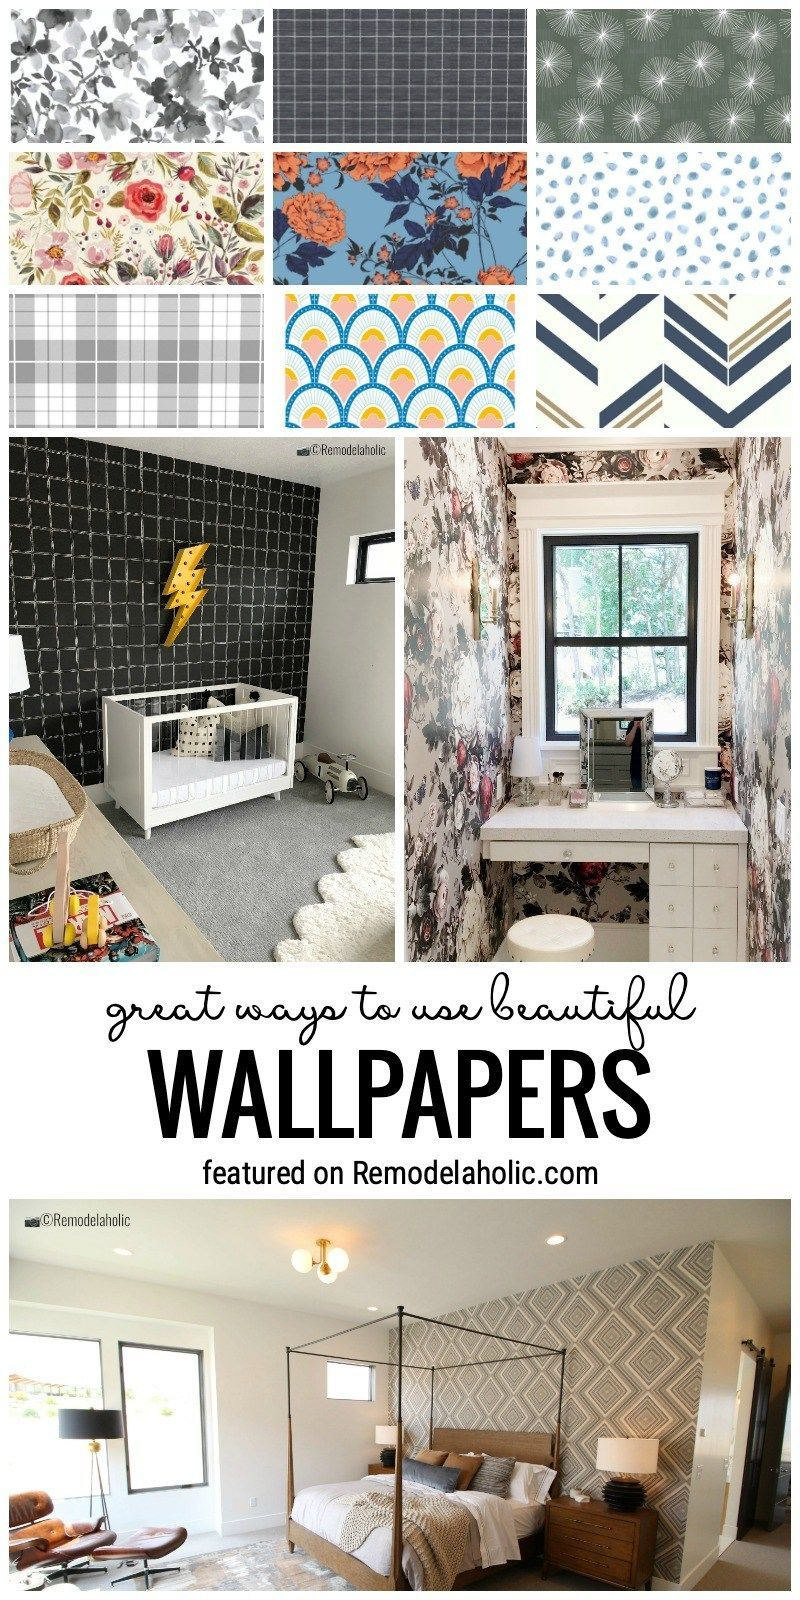 Great Ways To Use Beautiful Wallpapers In Many Different Ways All Over The Home Featured On Remodelaholic.com #wallpaperideas #prettywallpapers #wallpapers #wallpaper